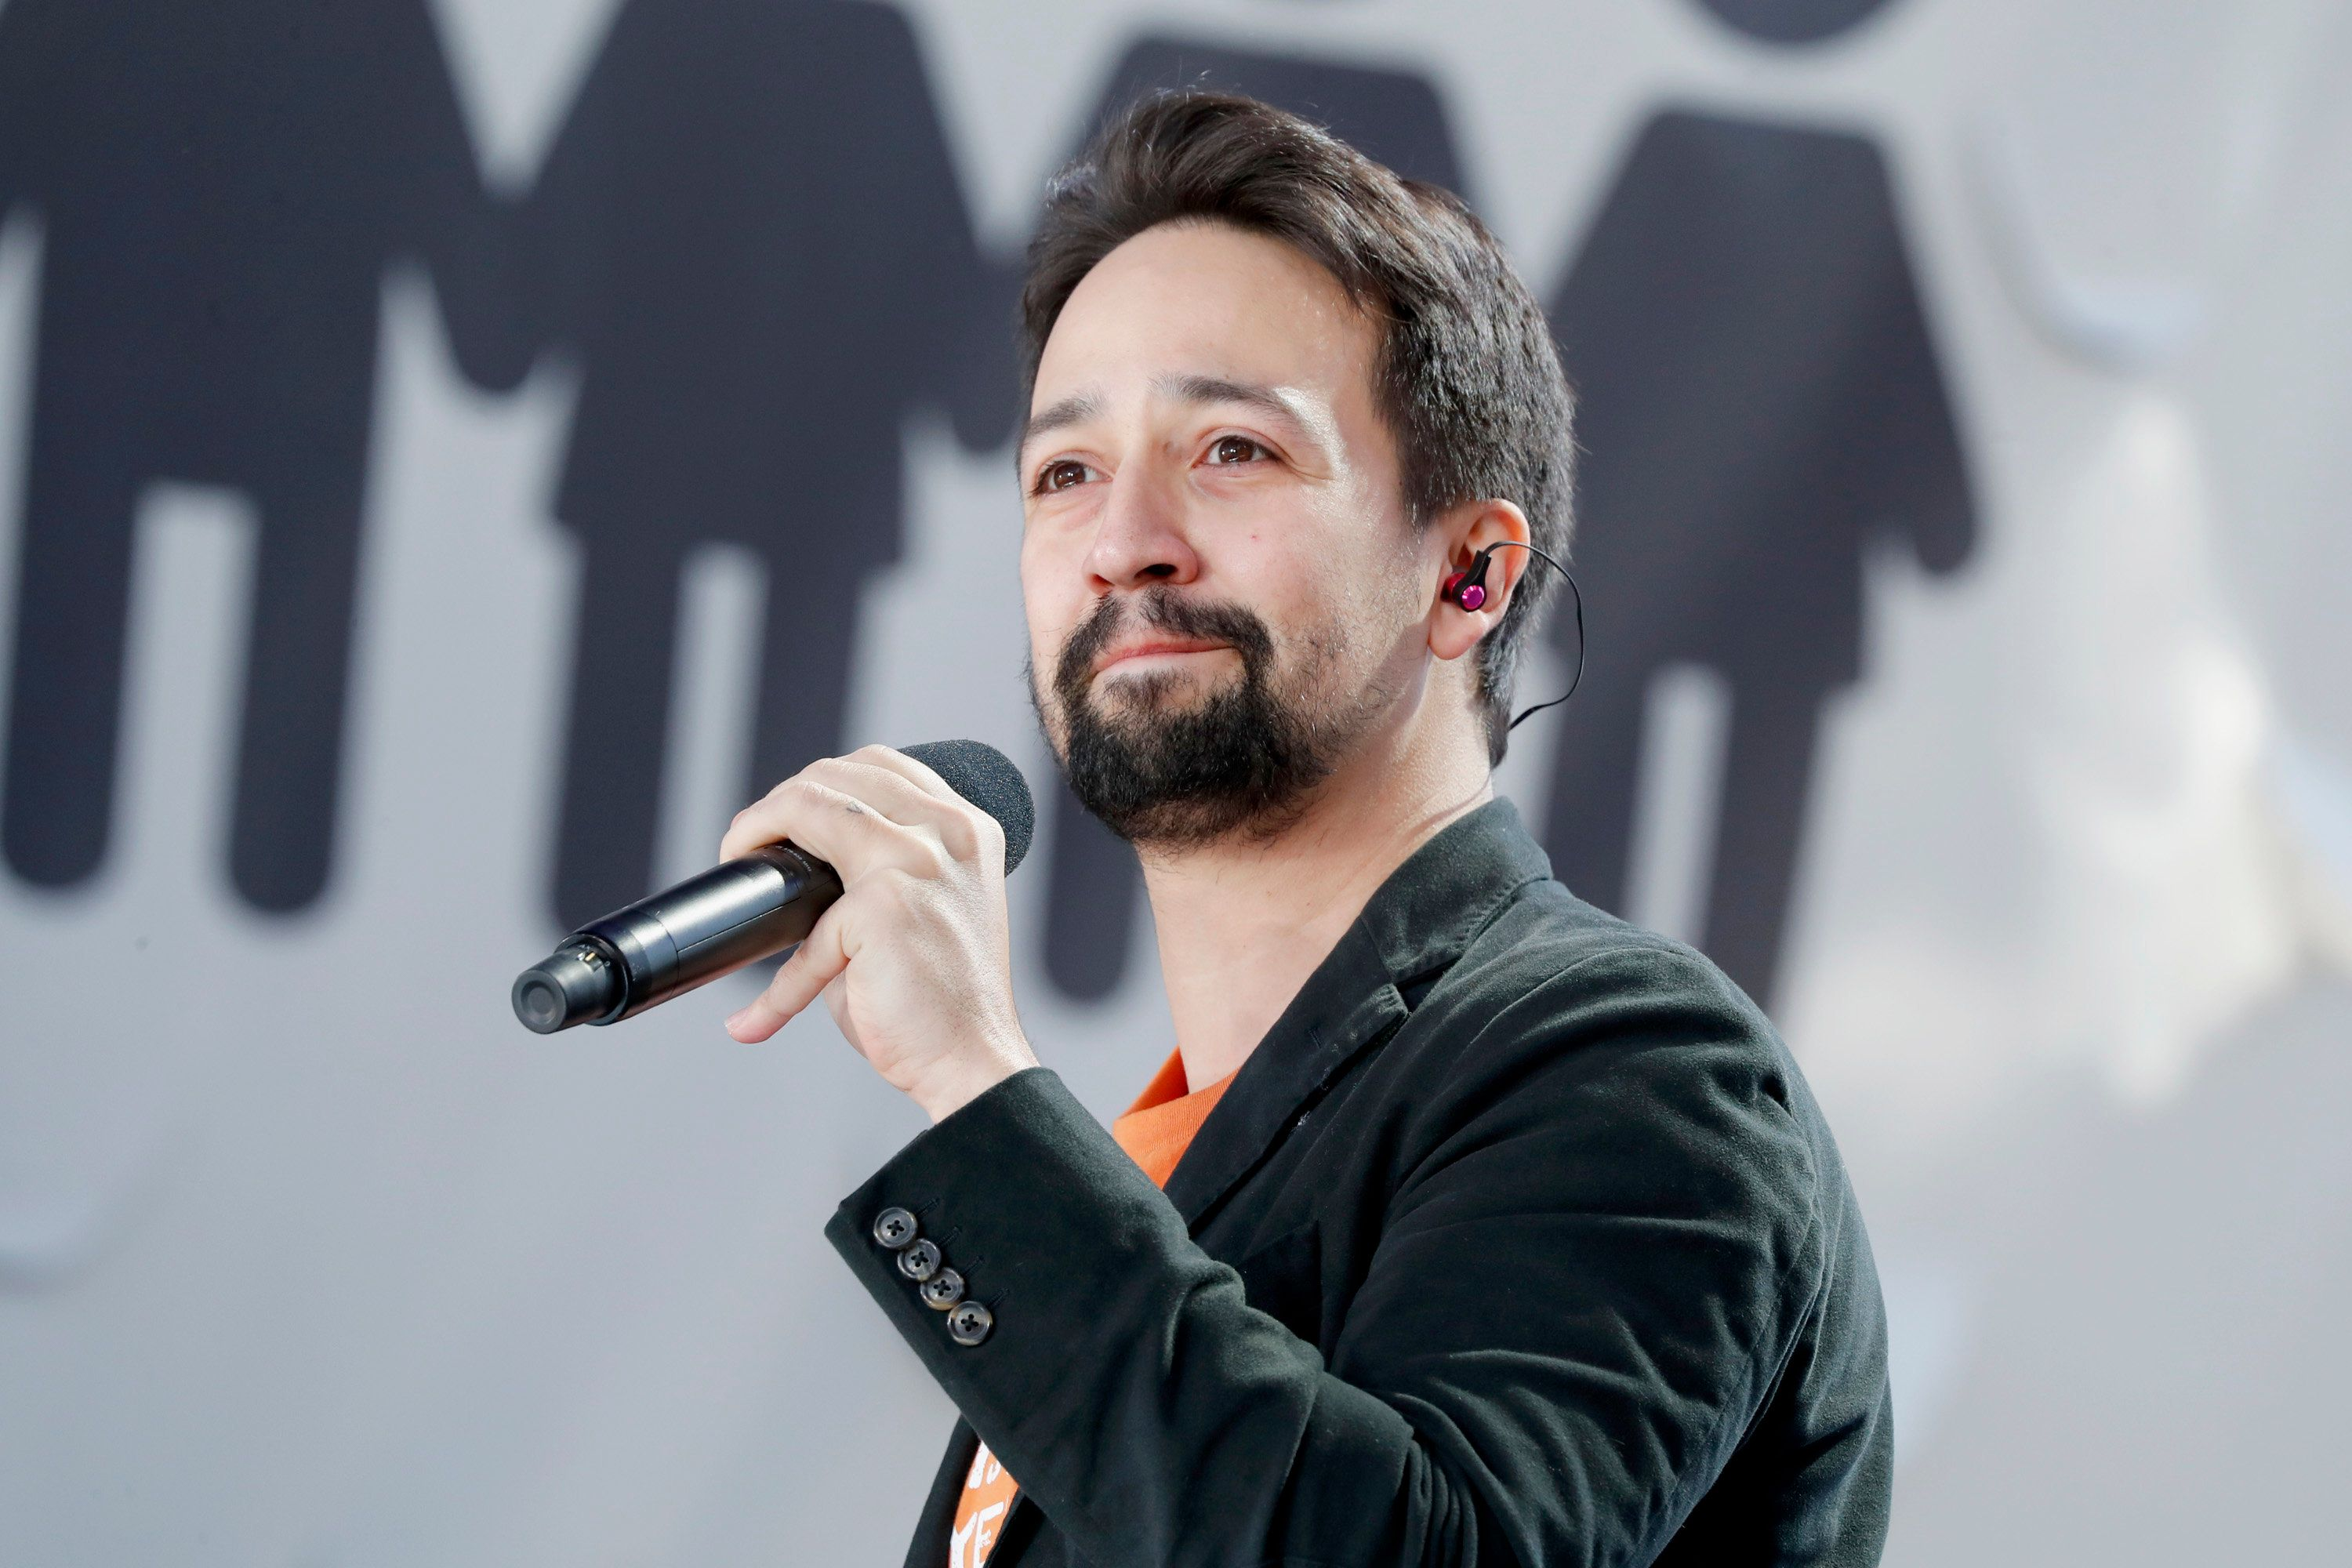 WASHINGTON, DC - MARCH 24:  Lin-Manuel Miranda performs onstage at March For Our Lives on March 24, 2018 in Washington, DC.  (Photo by Paul Morigi/Getty Images for March For Our Lives)